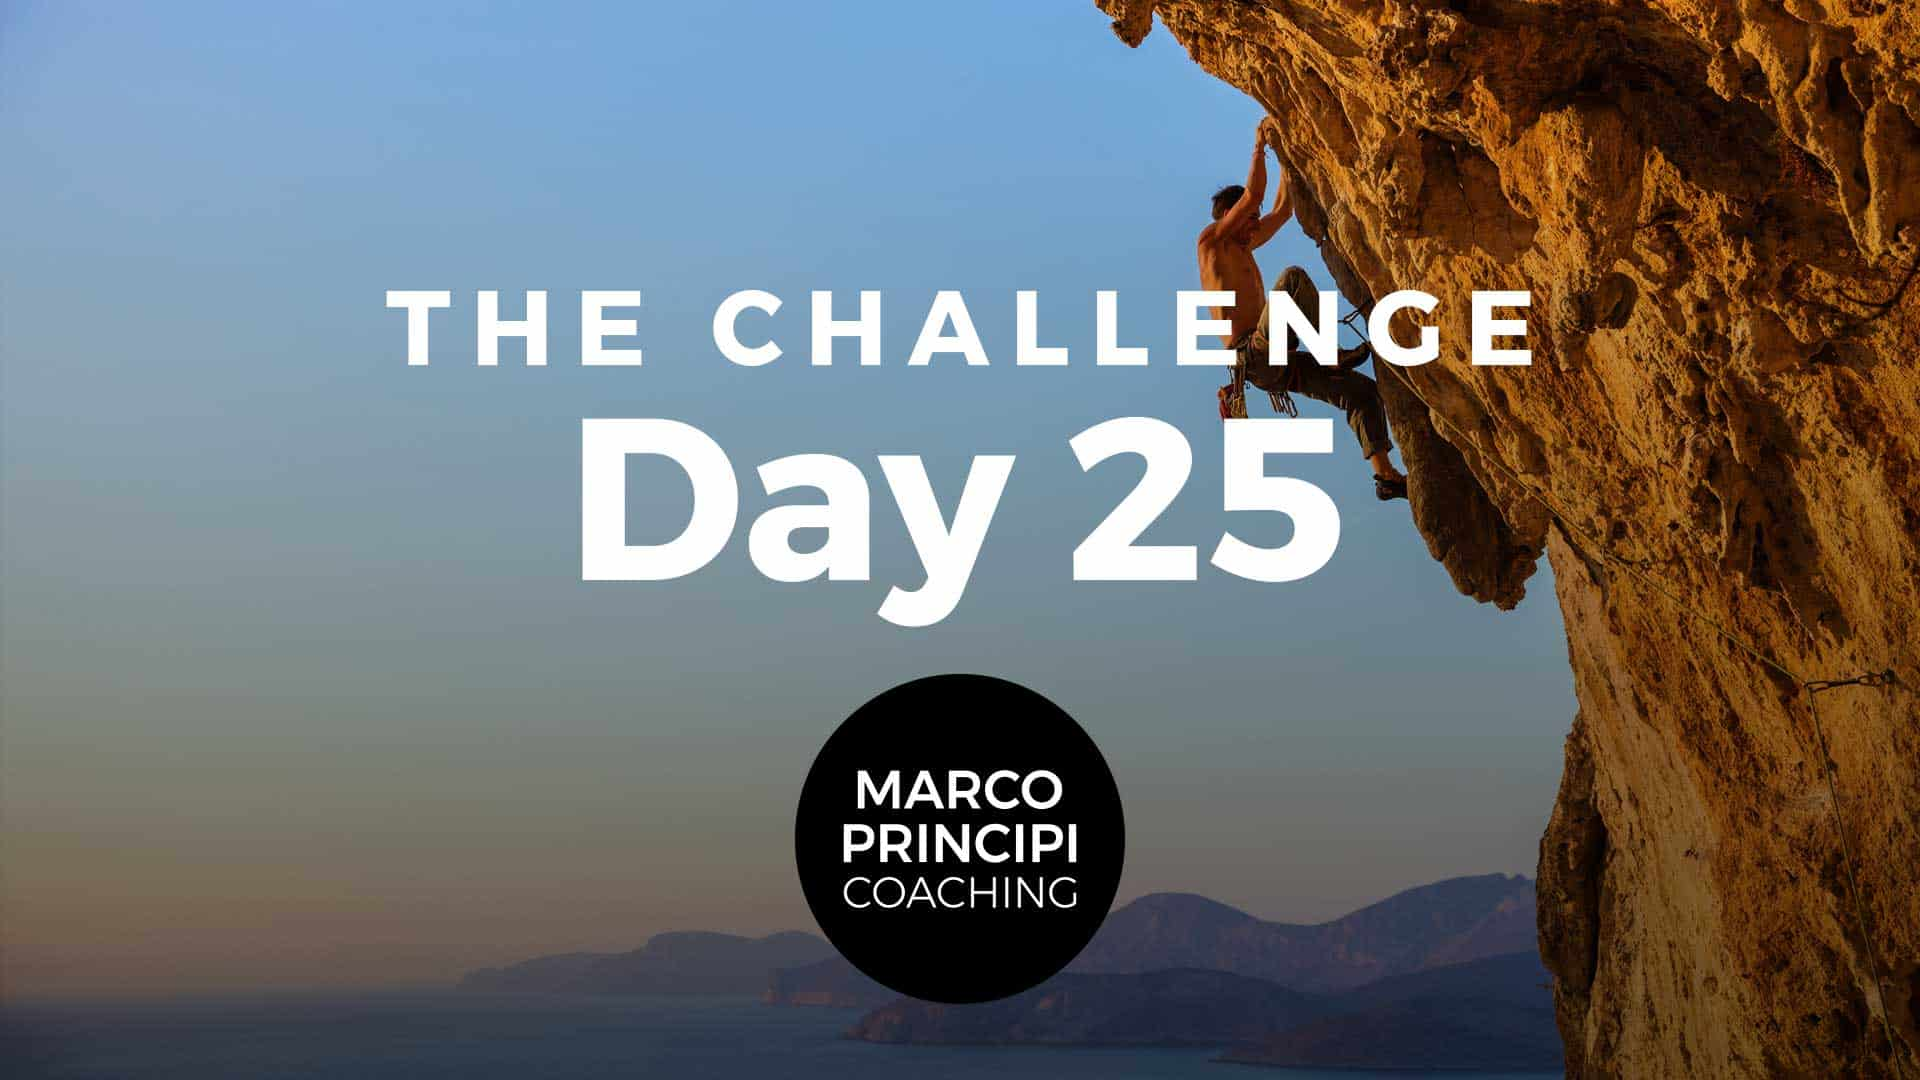 Marco Principi YT Cover The Challenge Day 025